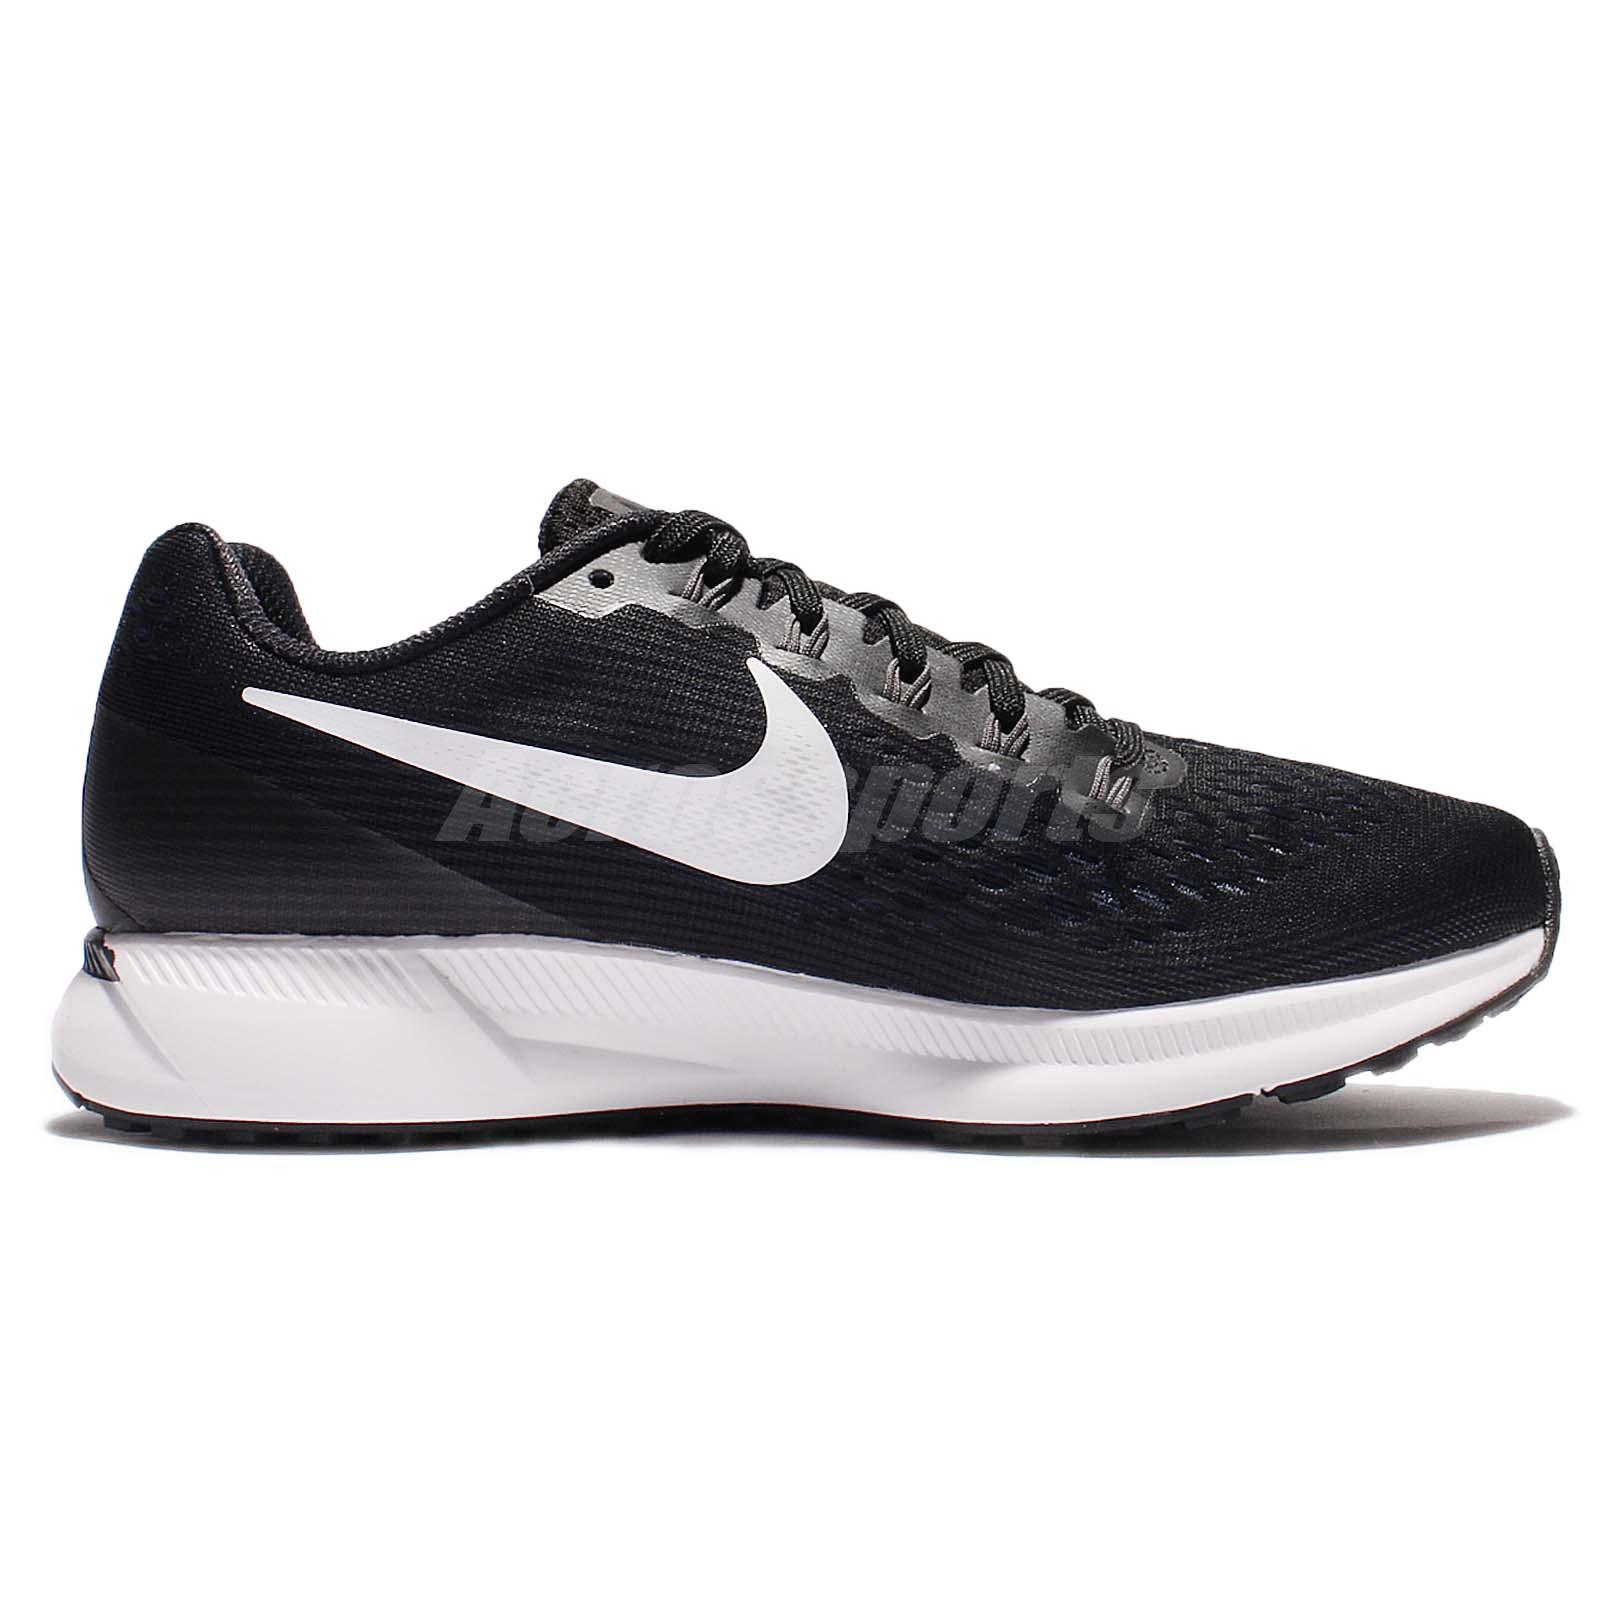 4cf373c7ccd5c Nike Wmns Air Zoom Pegasus 34 Black White Women Running Shoe Sneaker ...